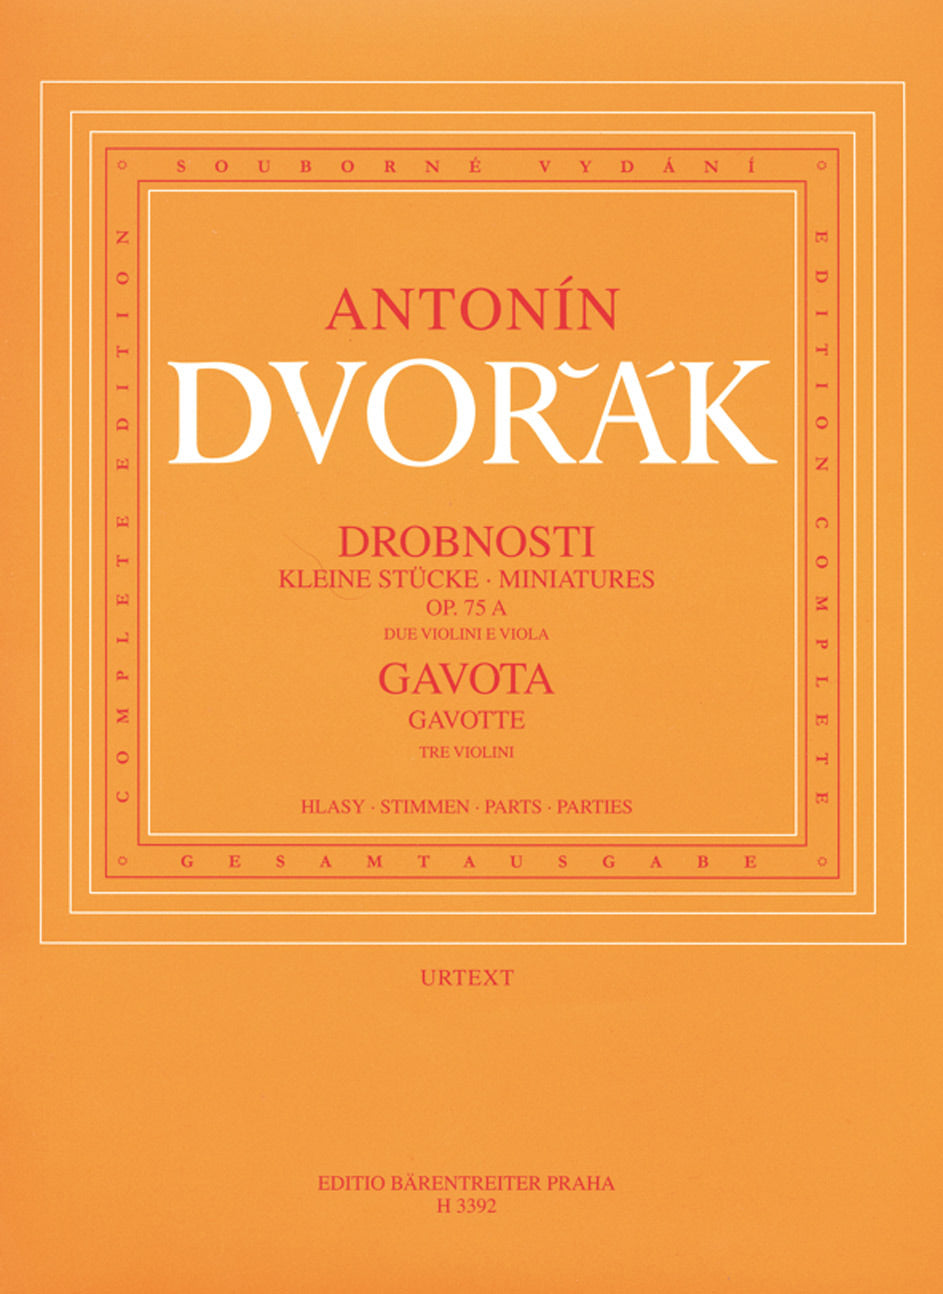 Dvořák: Four Miniatures, Op. 75a and Gavotte, B 164